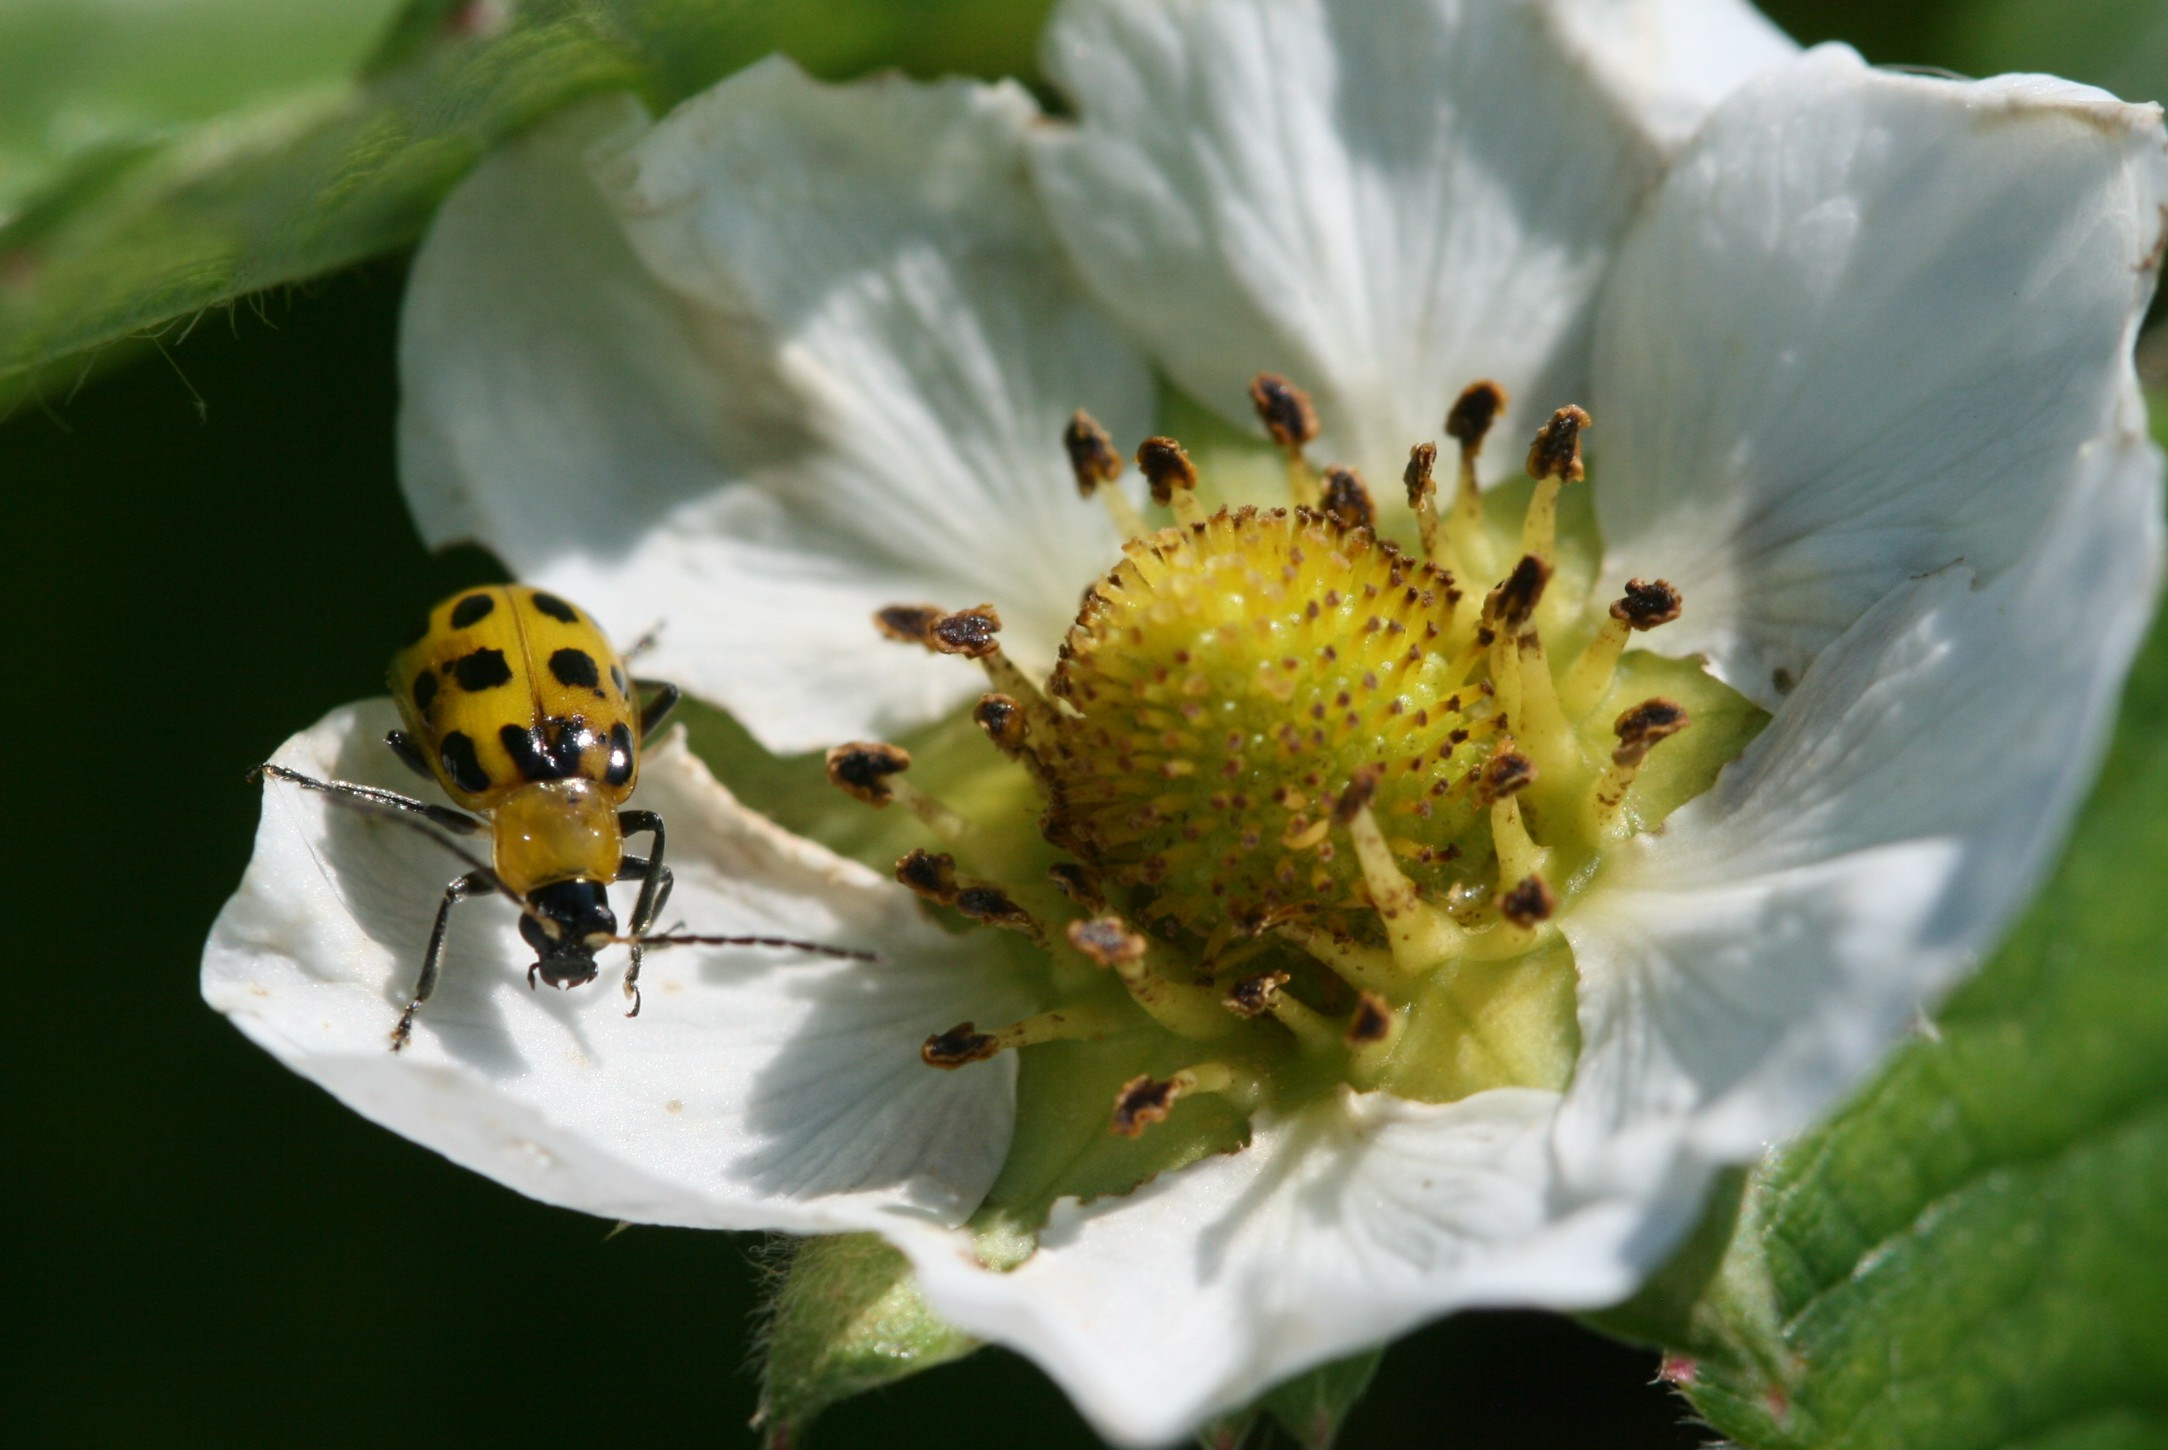 Cucumber beetle adult. Photo: Jeremy Slone